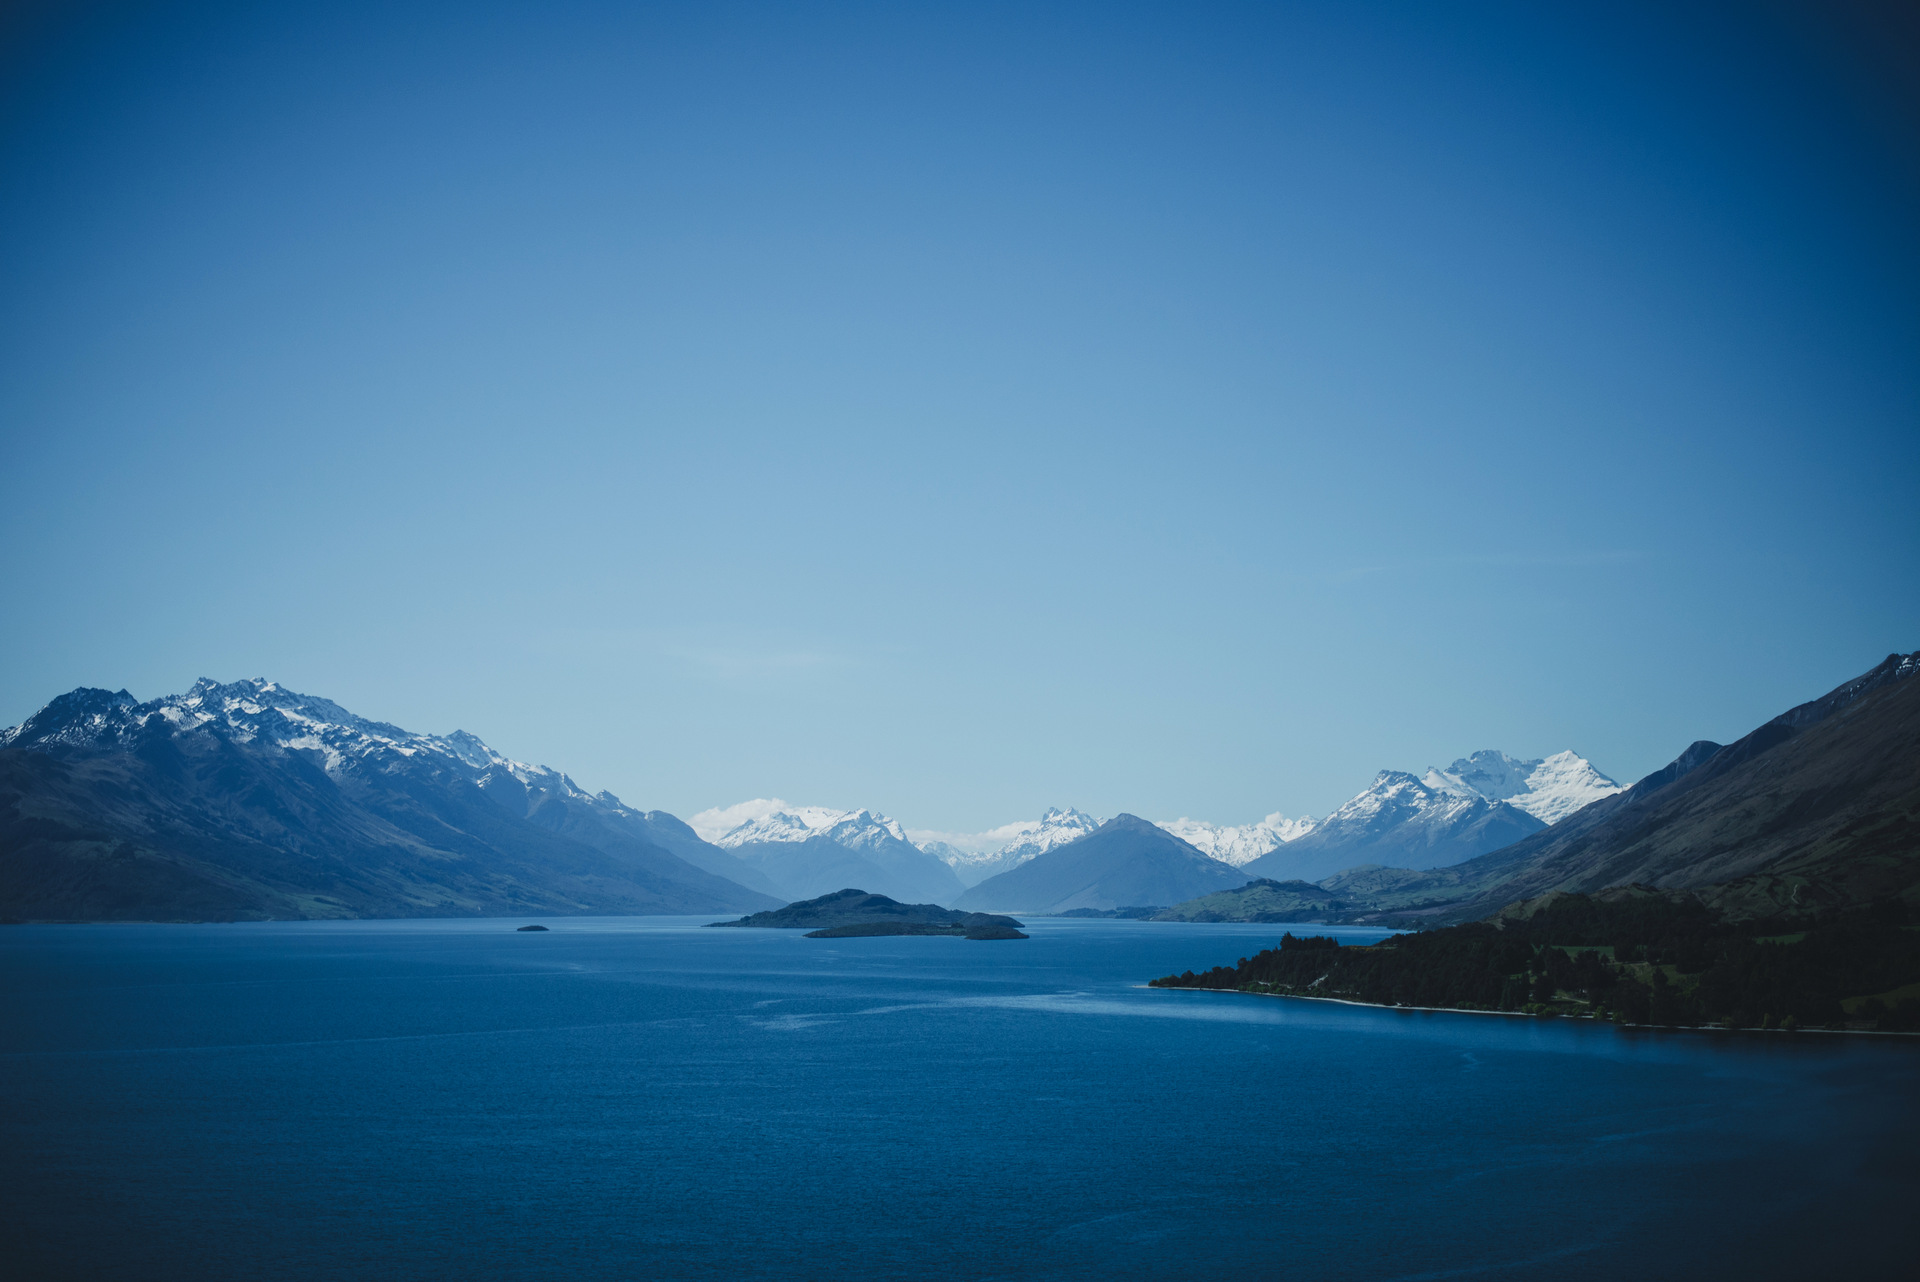 droga do glenorchy z queenstown